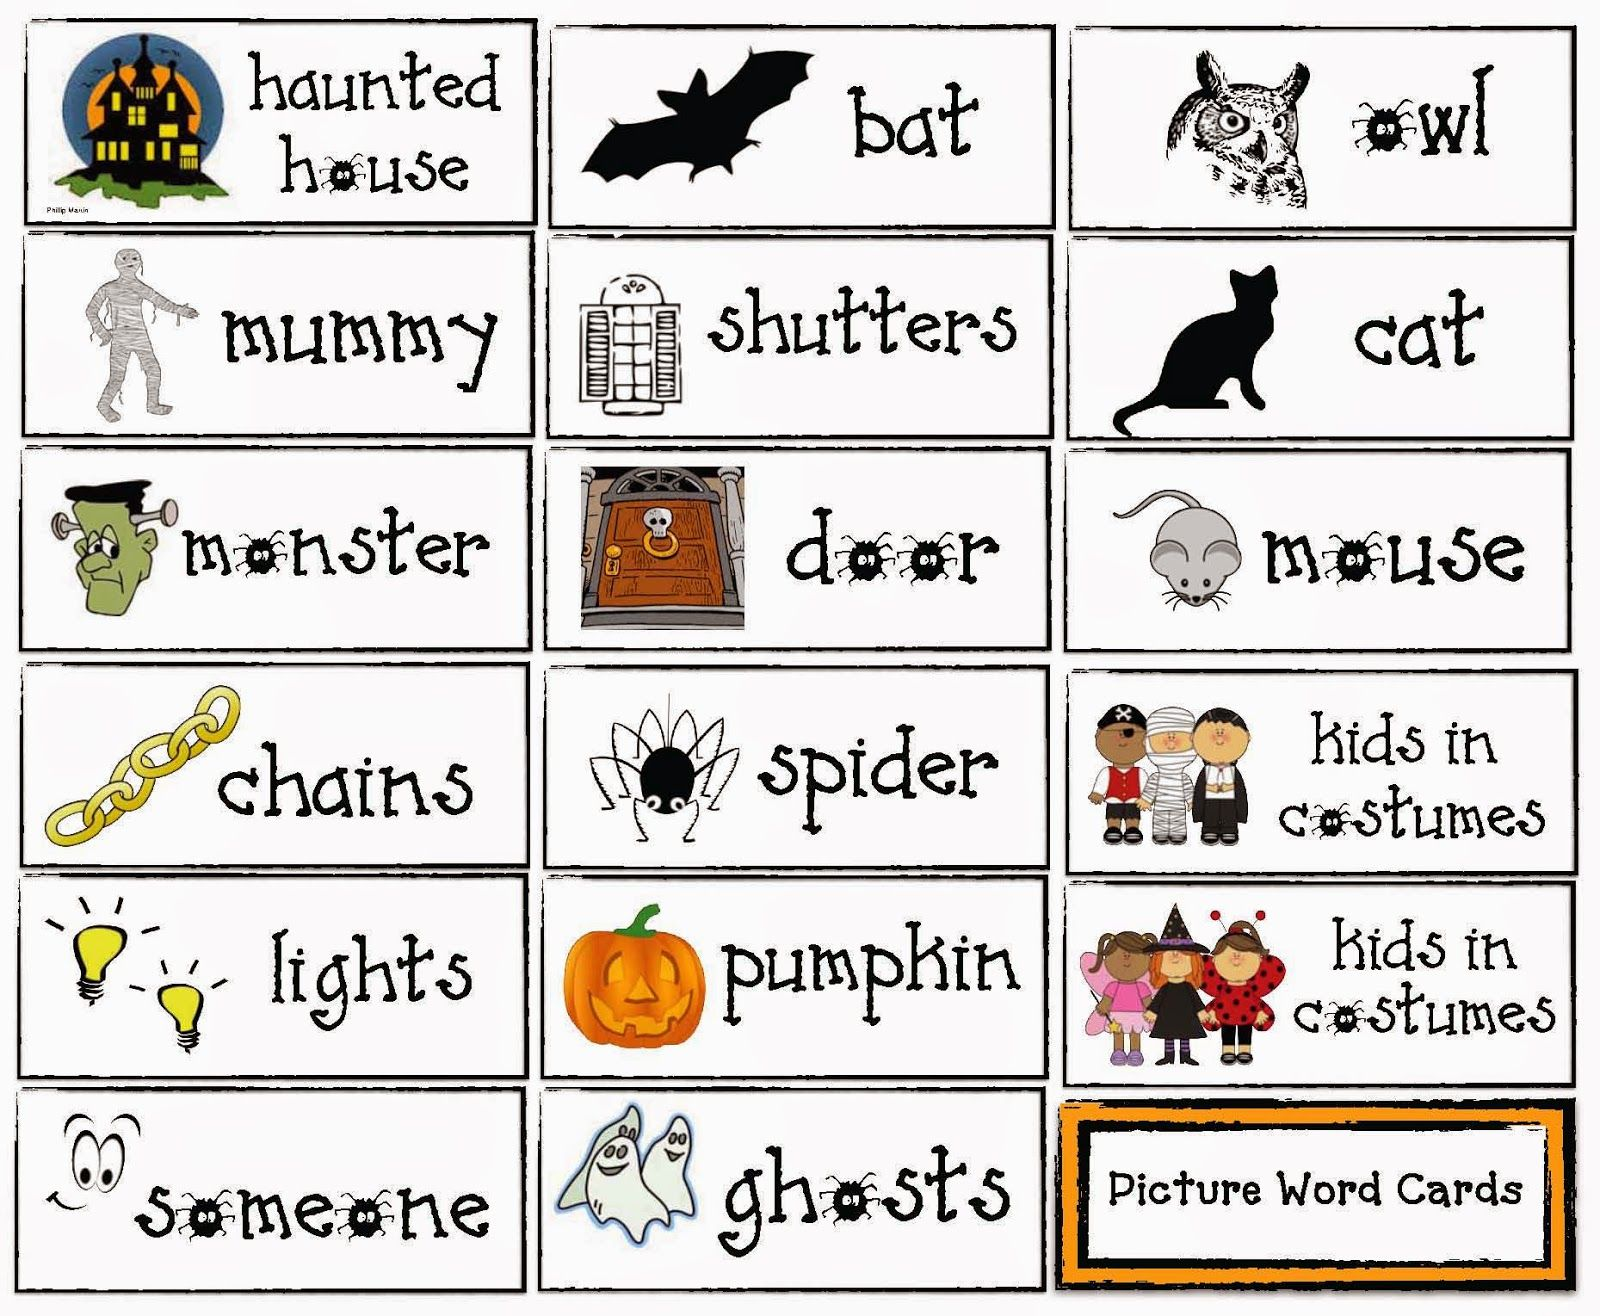 Haunted Onomatopoeia House Song And Games For Halloween